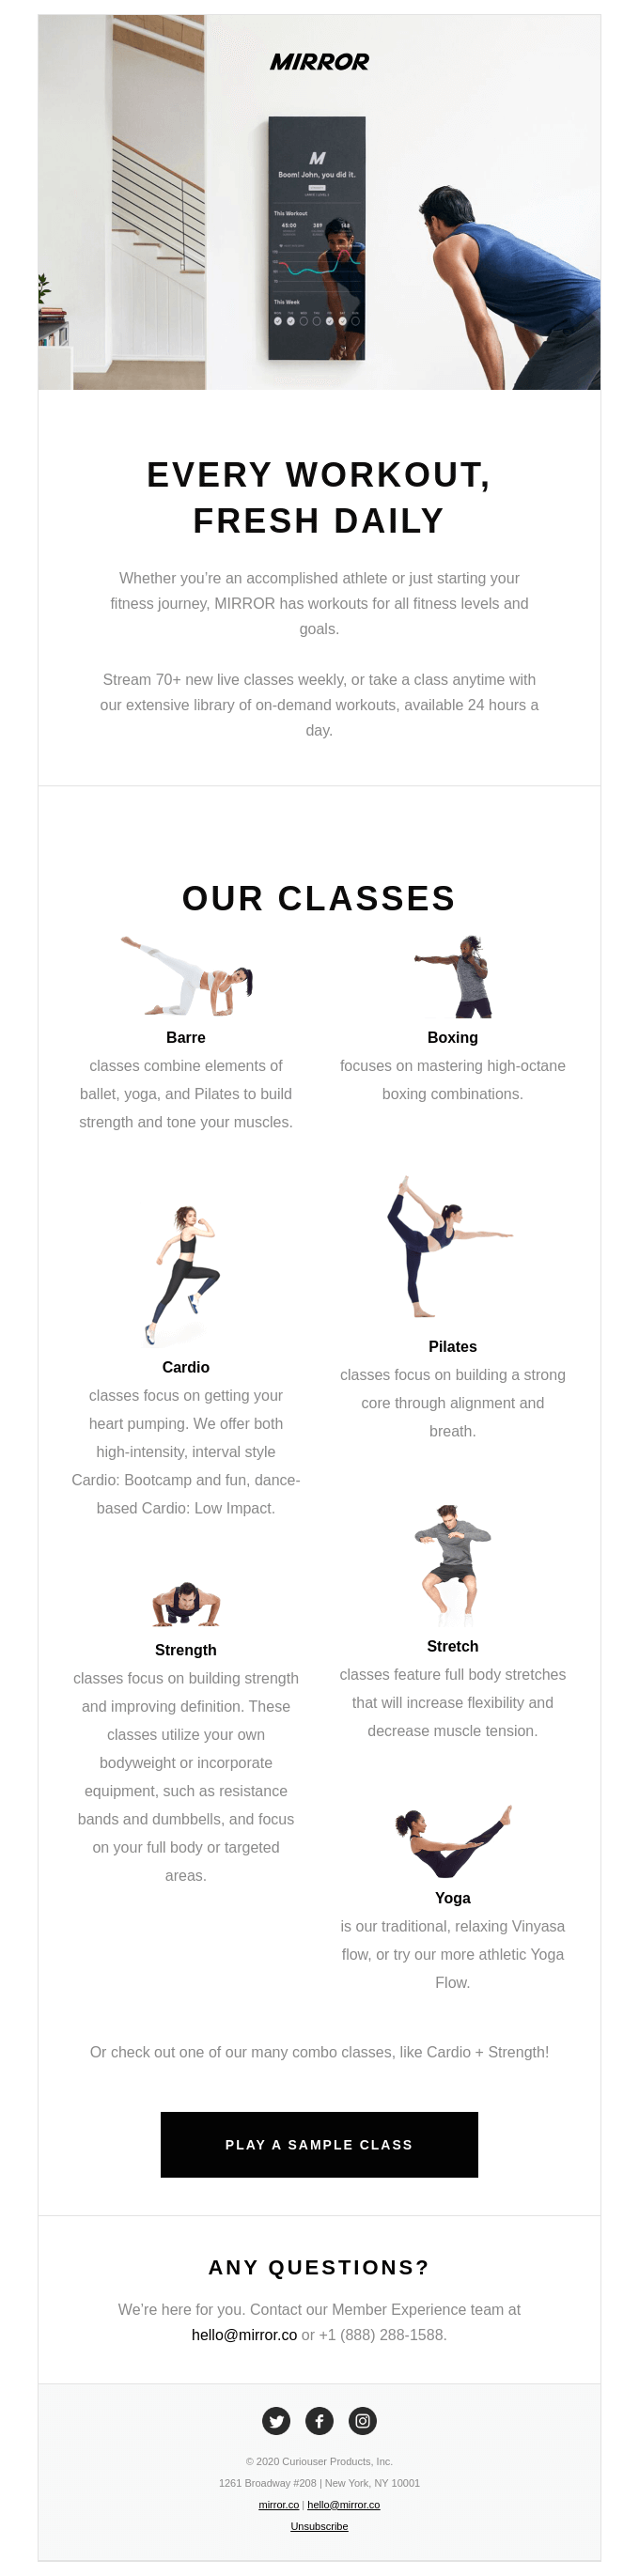 your-favorite-workout-your-home